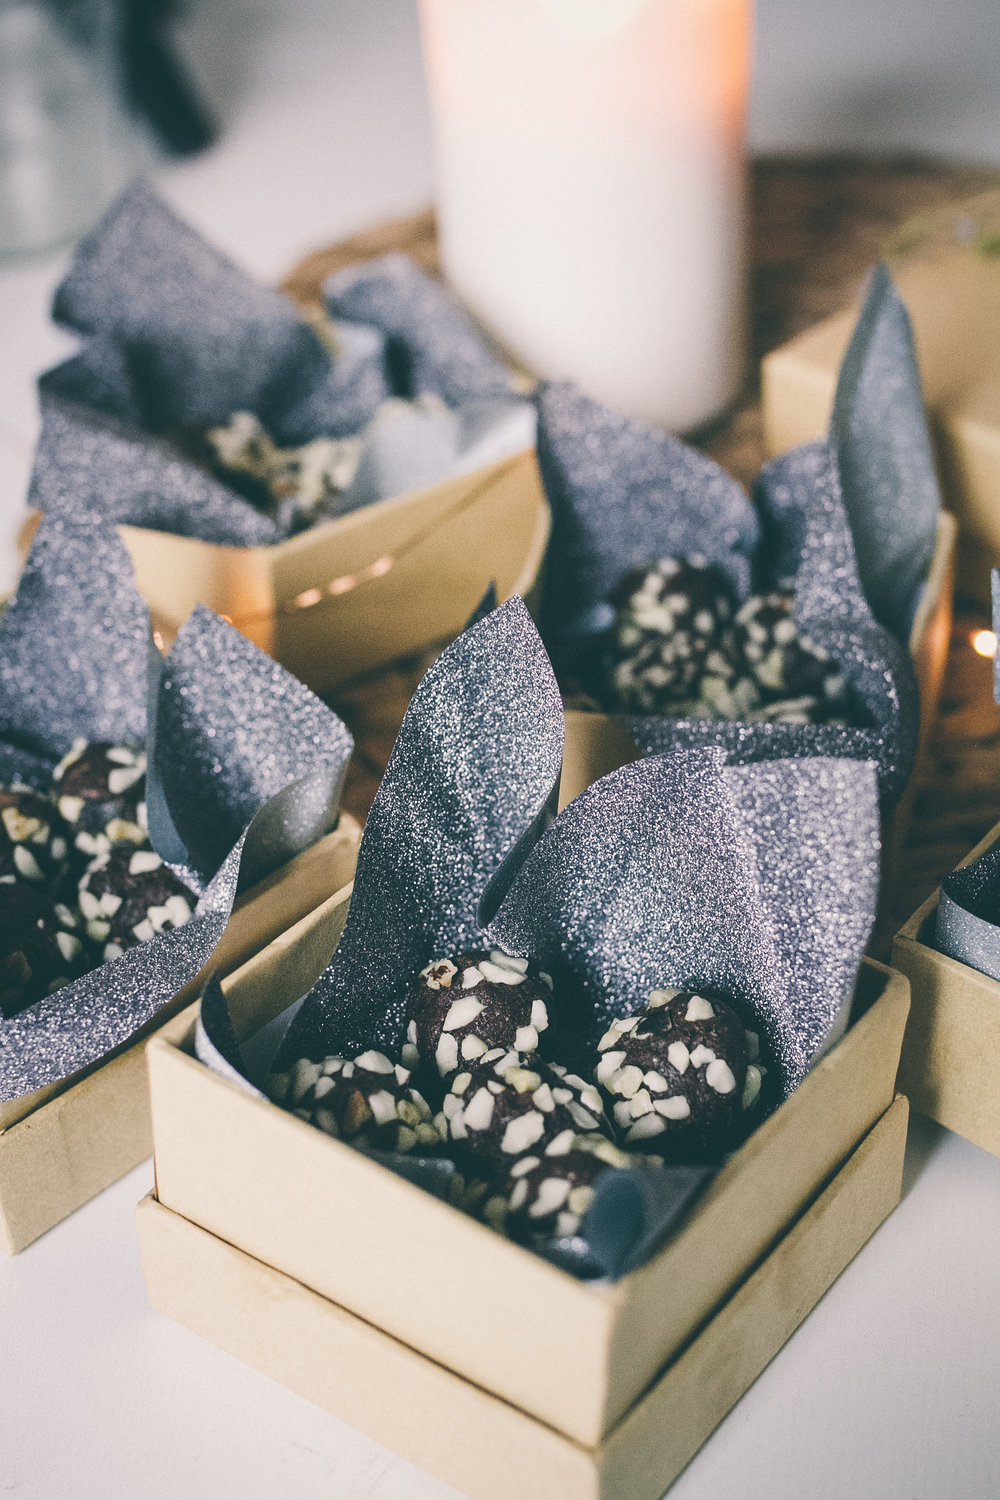 Christmas truffles - Carolyn Carter blog